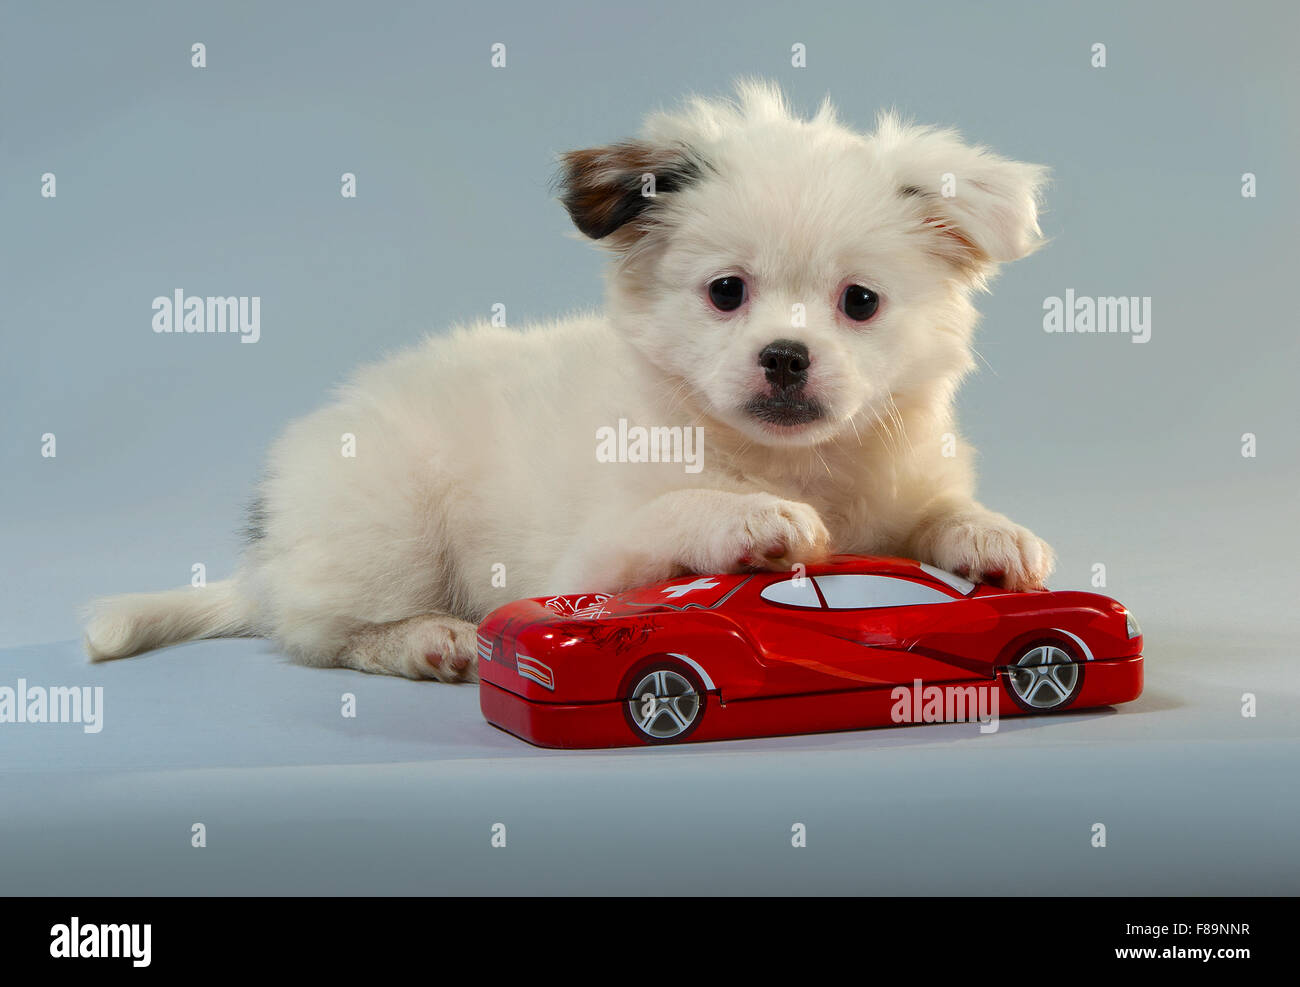 Portrait of a puppy of companion mixes with the red toy car. gray background, horizontal format. - Stock Image